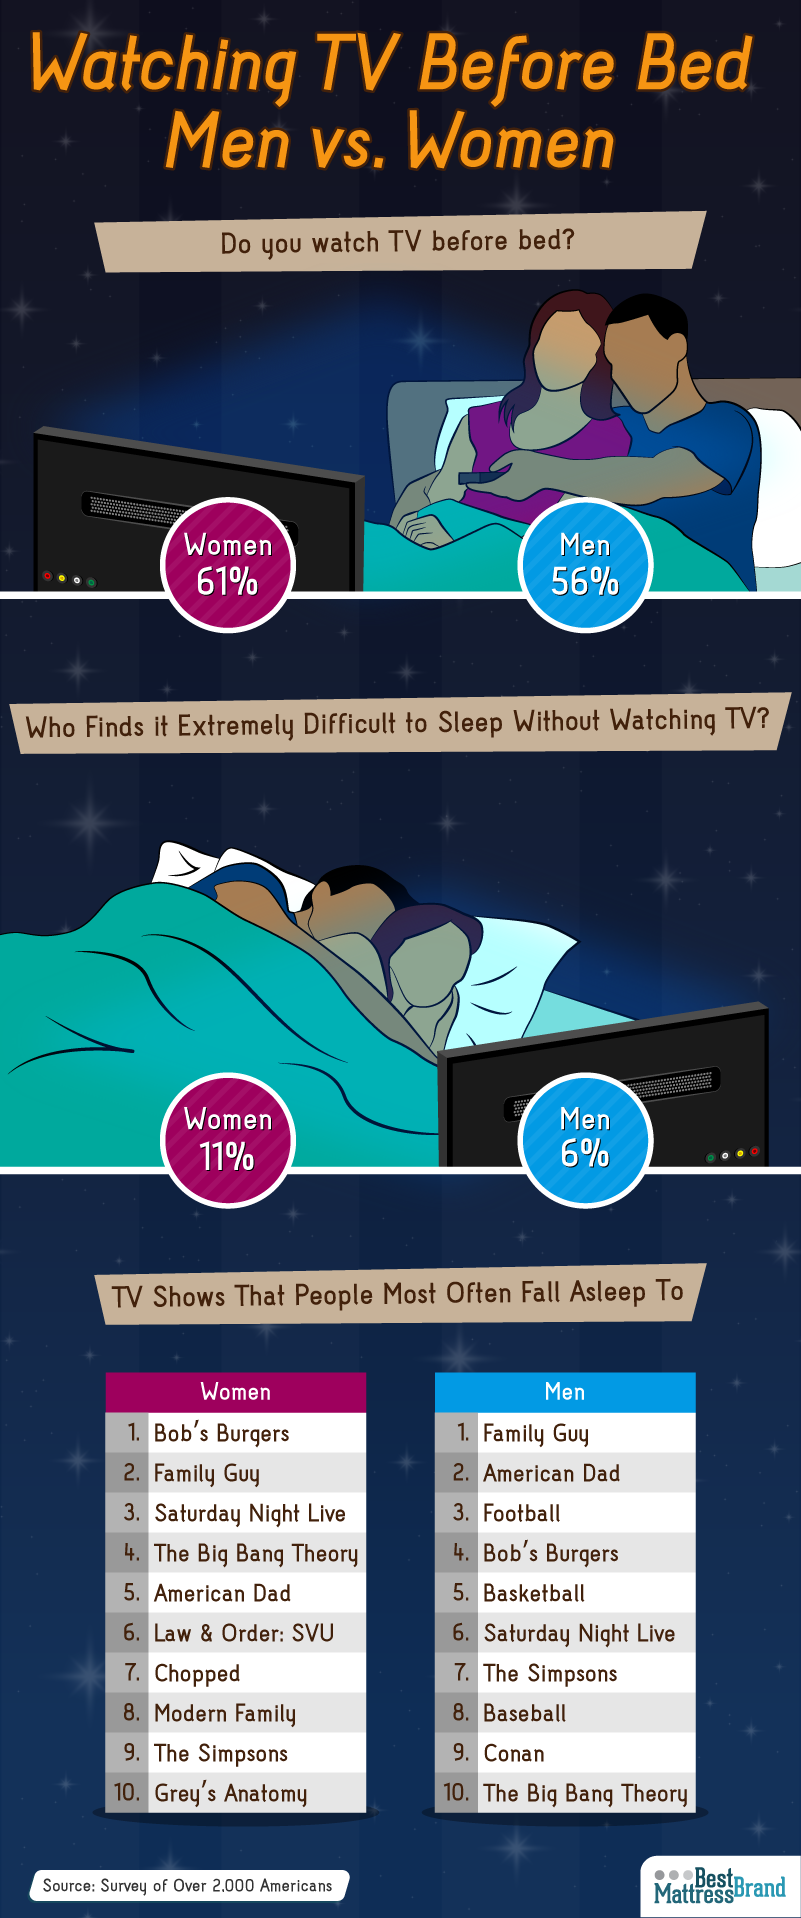 Men VS. Women Watching TV Before Bed